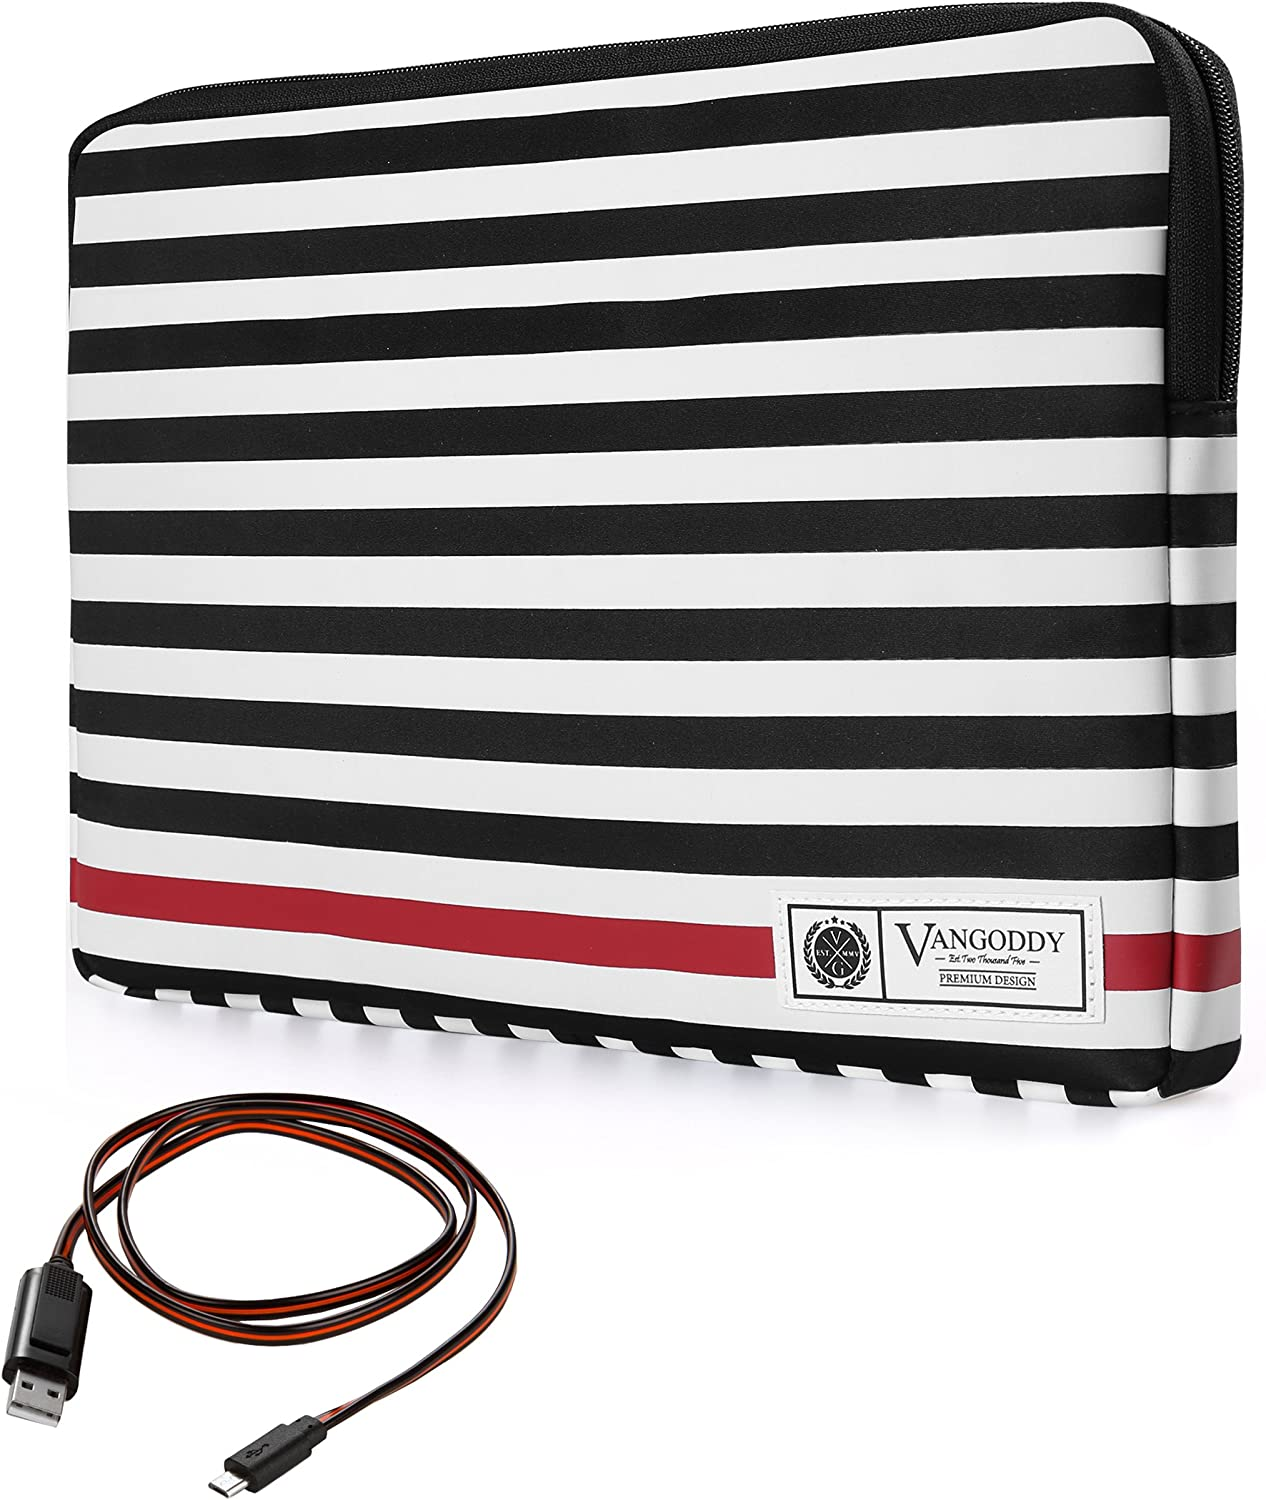 Vangoddy Luxe R Series Black White Stripe 17 Inch Compact Padded Carrying Sleeve Case for Lenovo G70, IdeaPad 300 700 Y700, ThinkPad P70 Series 17.3 inch Laptop with Sync and Charge Cable